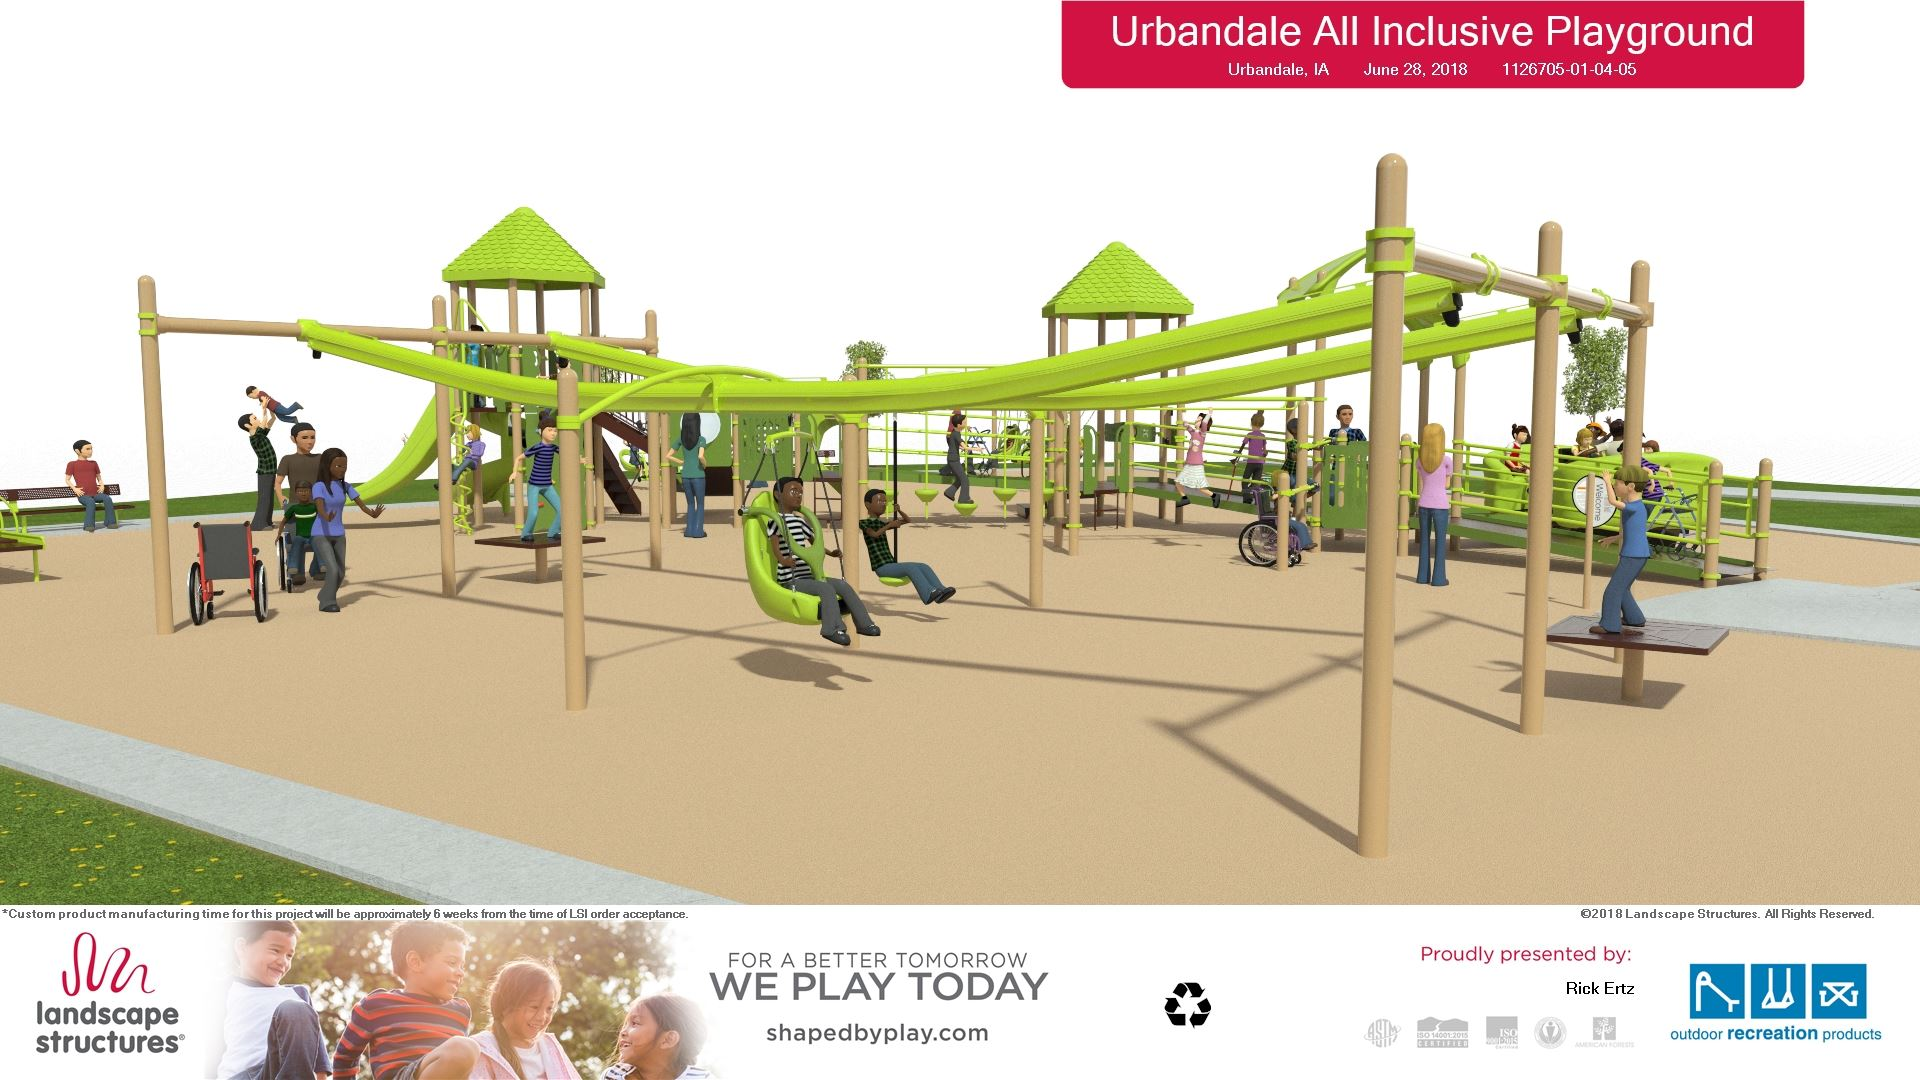 7-5-18  Playground rendering -view 2 -  Landscape Structures